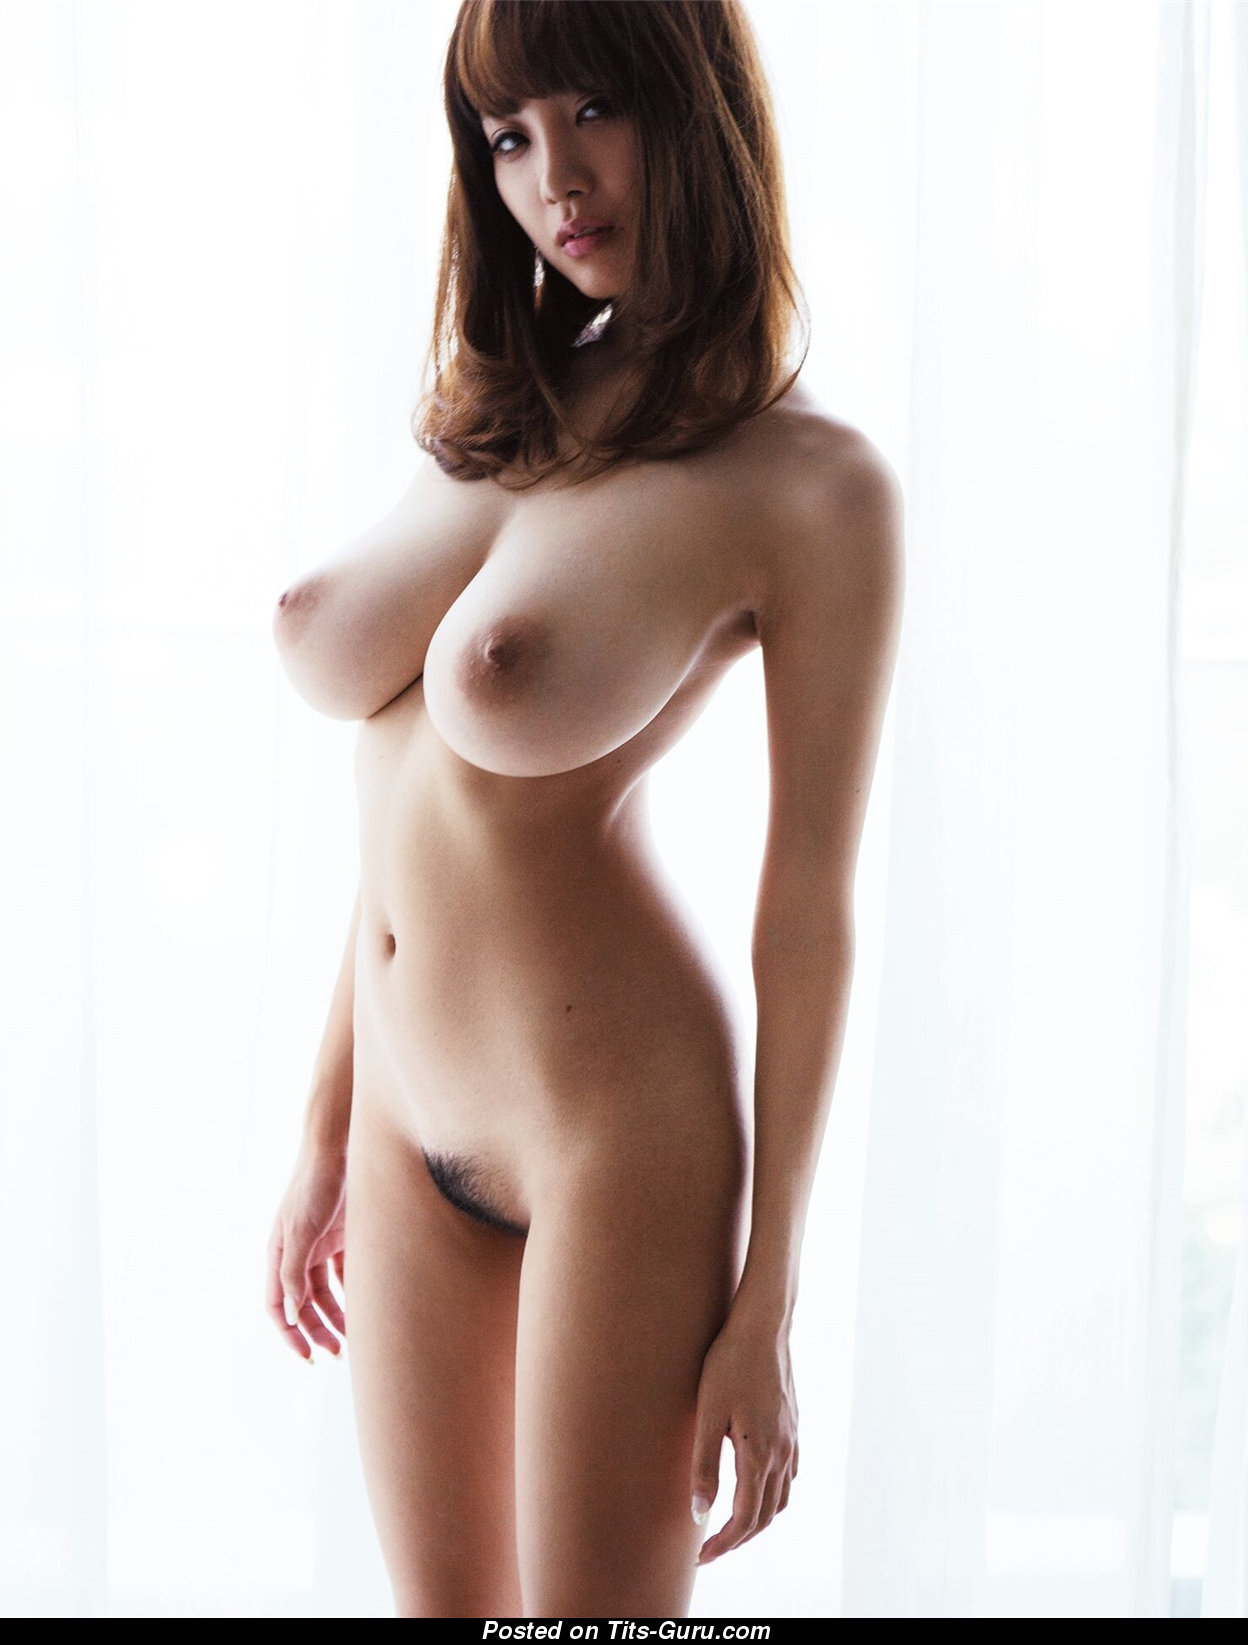 Pictures of bare naked women